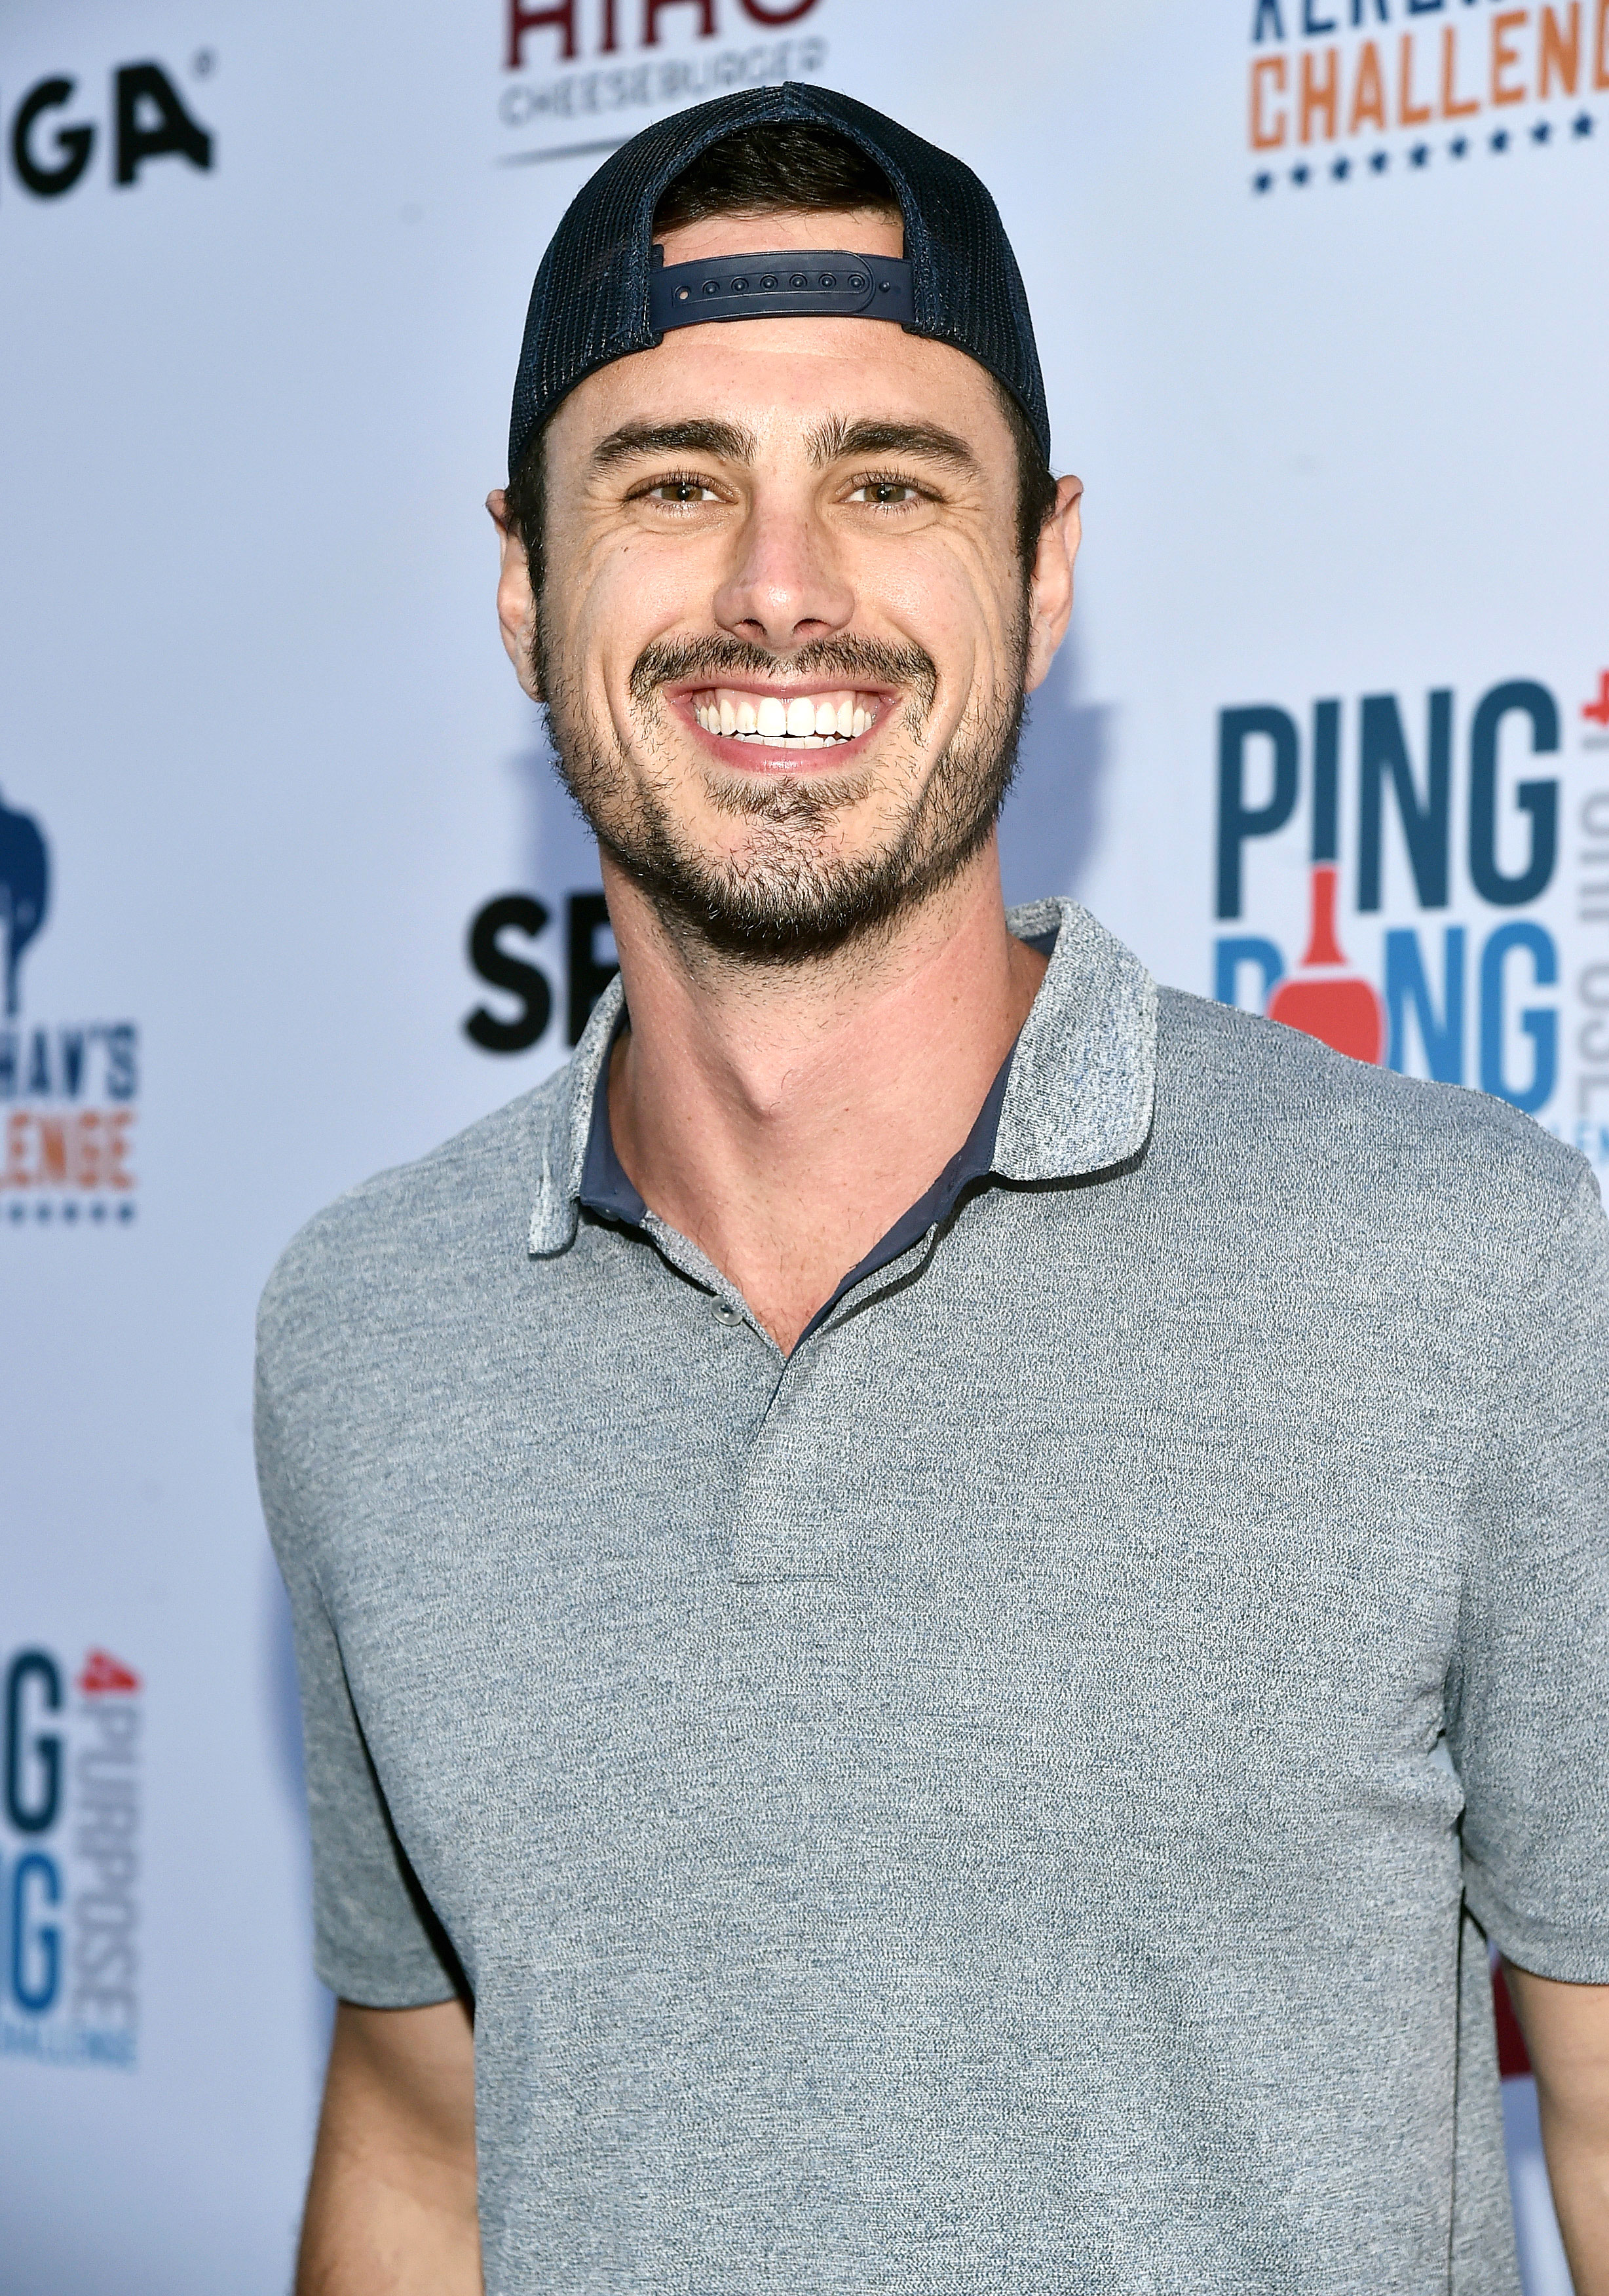 Bachelor Nation's Ben Higgins Is Dating Someone New: 'She's the Best' - Ben Higgins arrives at Clayton Kershaw's 6th Annual Ping Pong 4 Purpose on August 23, 2018 in Los Angeles, California.